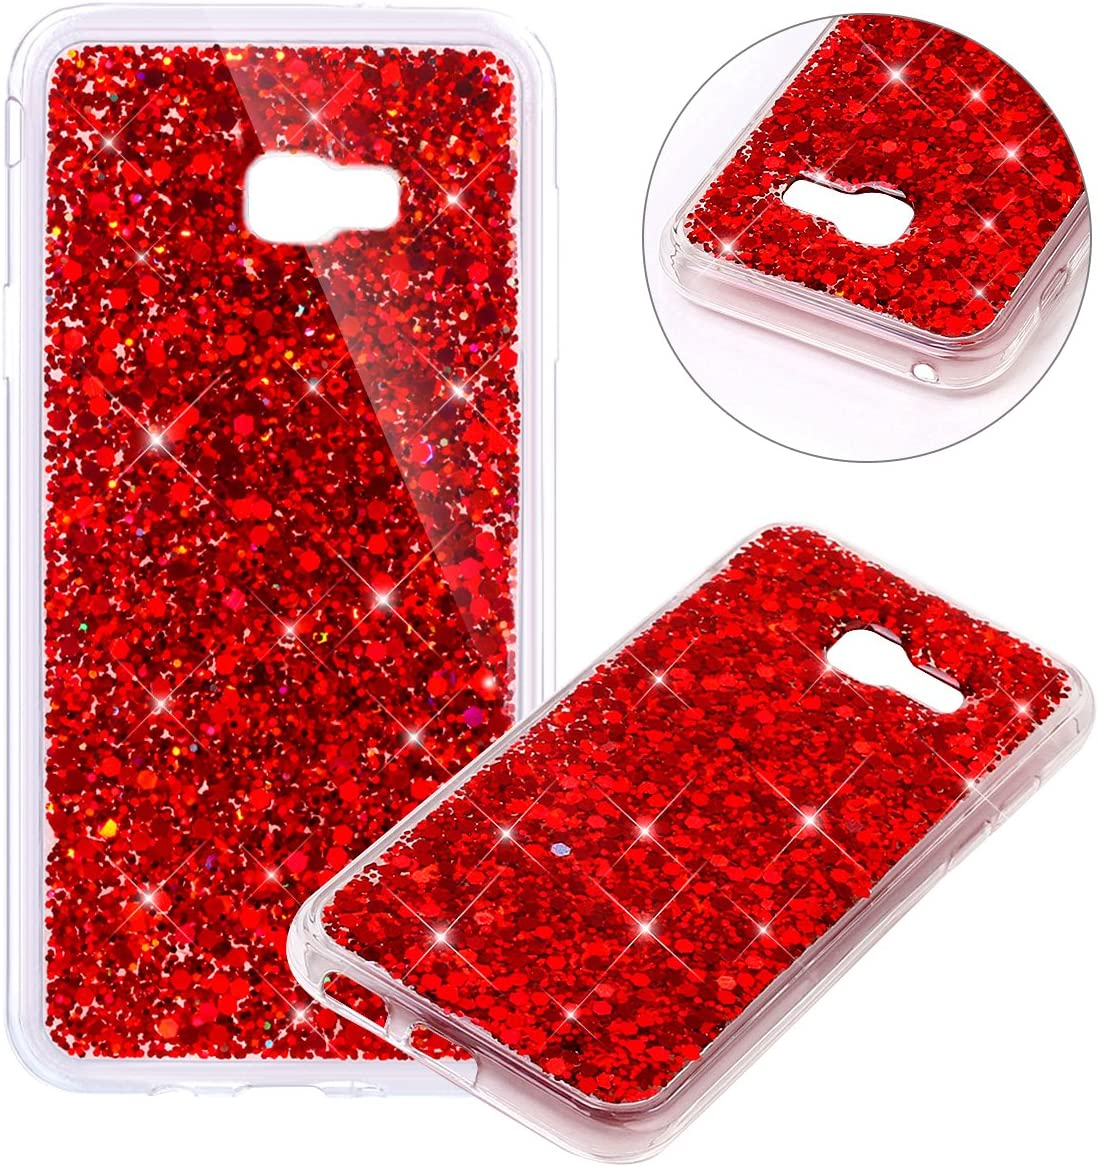 Blue Slim Fit TPU Bumper Shiny Bling Glitter Case for Galaxy A5 2017 Soft Sparkle Silicon Shockproof Back Cover Shell Clear Protective Case for Galaxy A5 2017 Galaxy A5 2017 Case